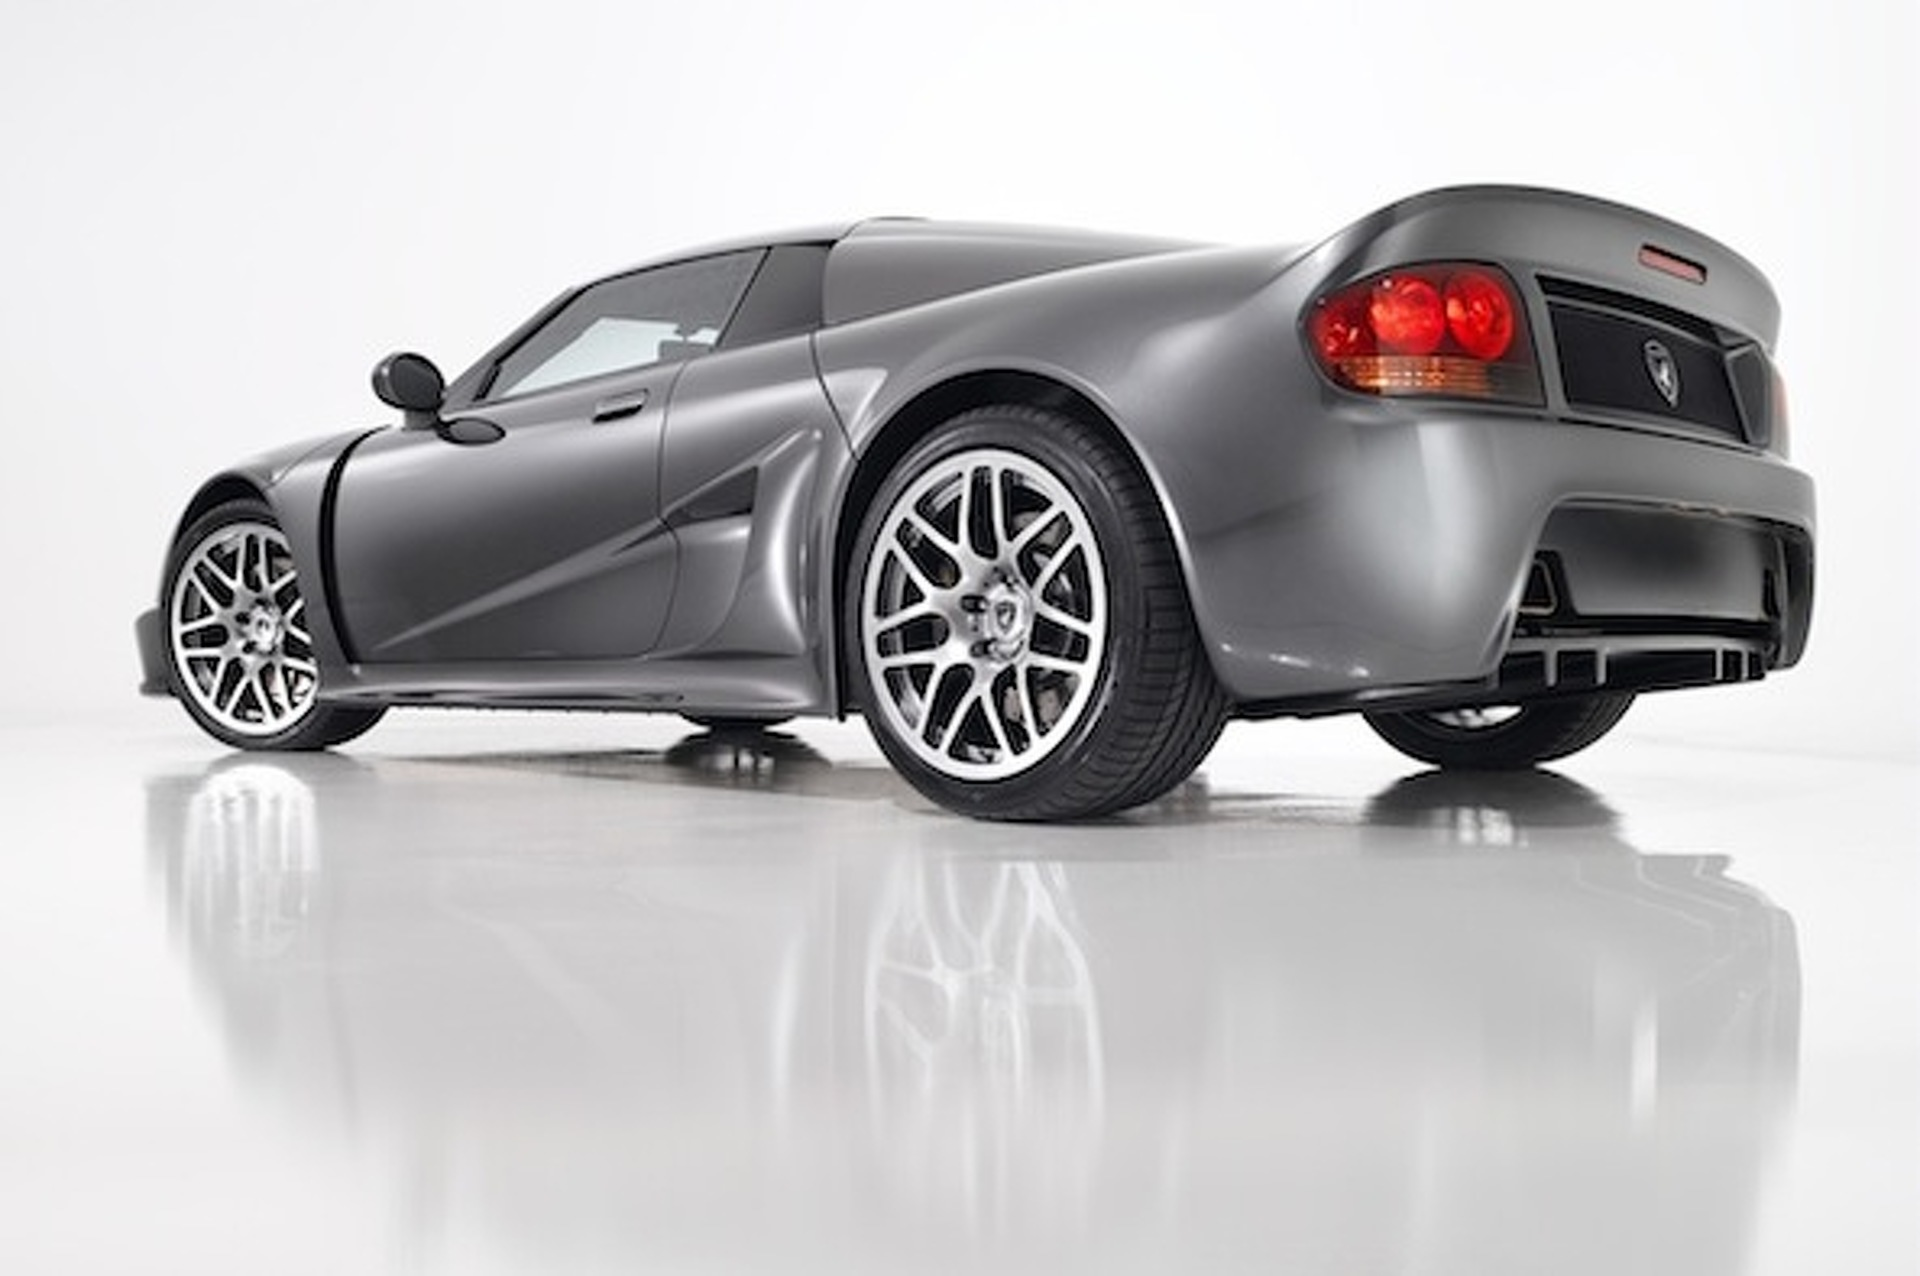 Mosler, Rossion Acquired by RP High Performance, New Cars Coming Soon